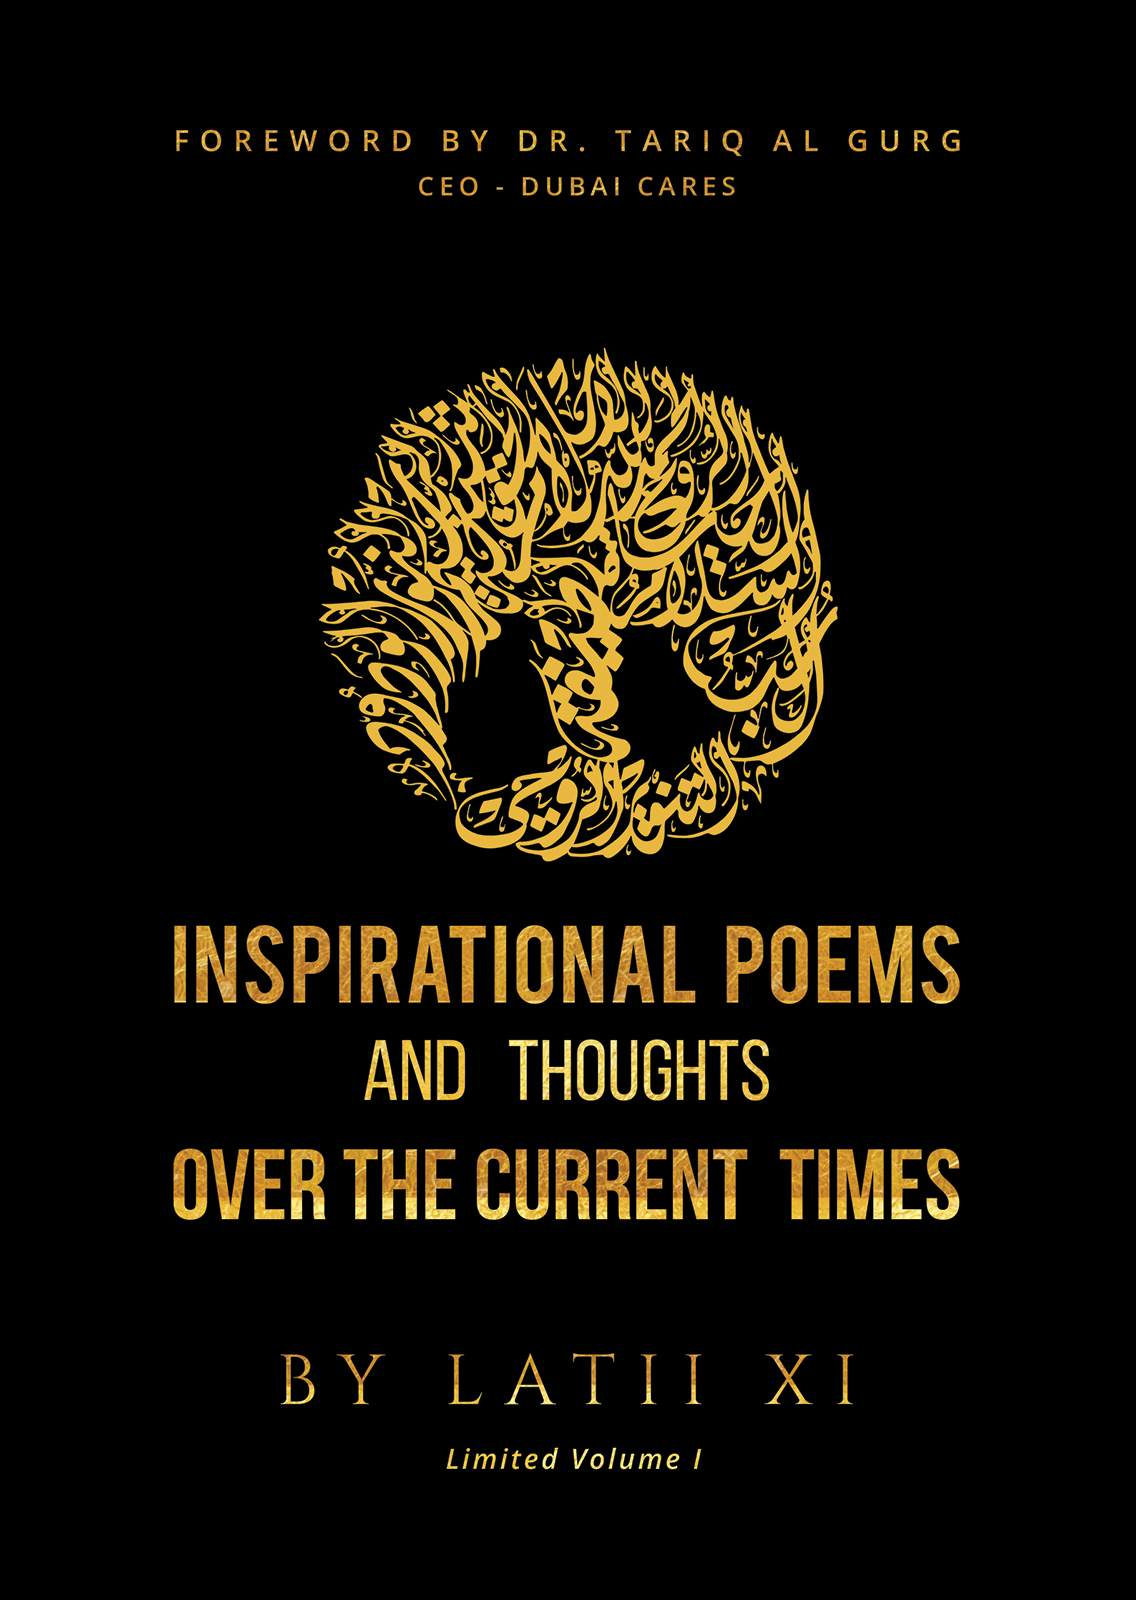 Inspirational Poems and Thoughts Over the Current Times